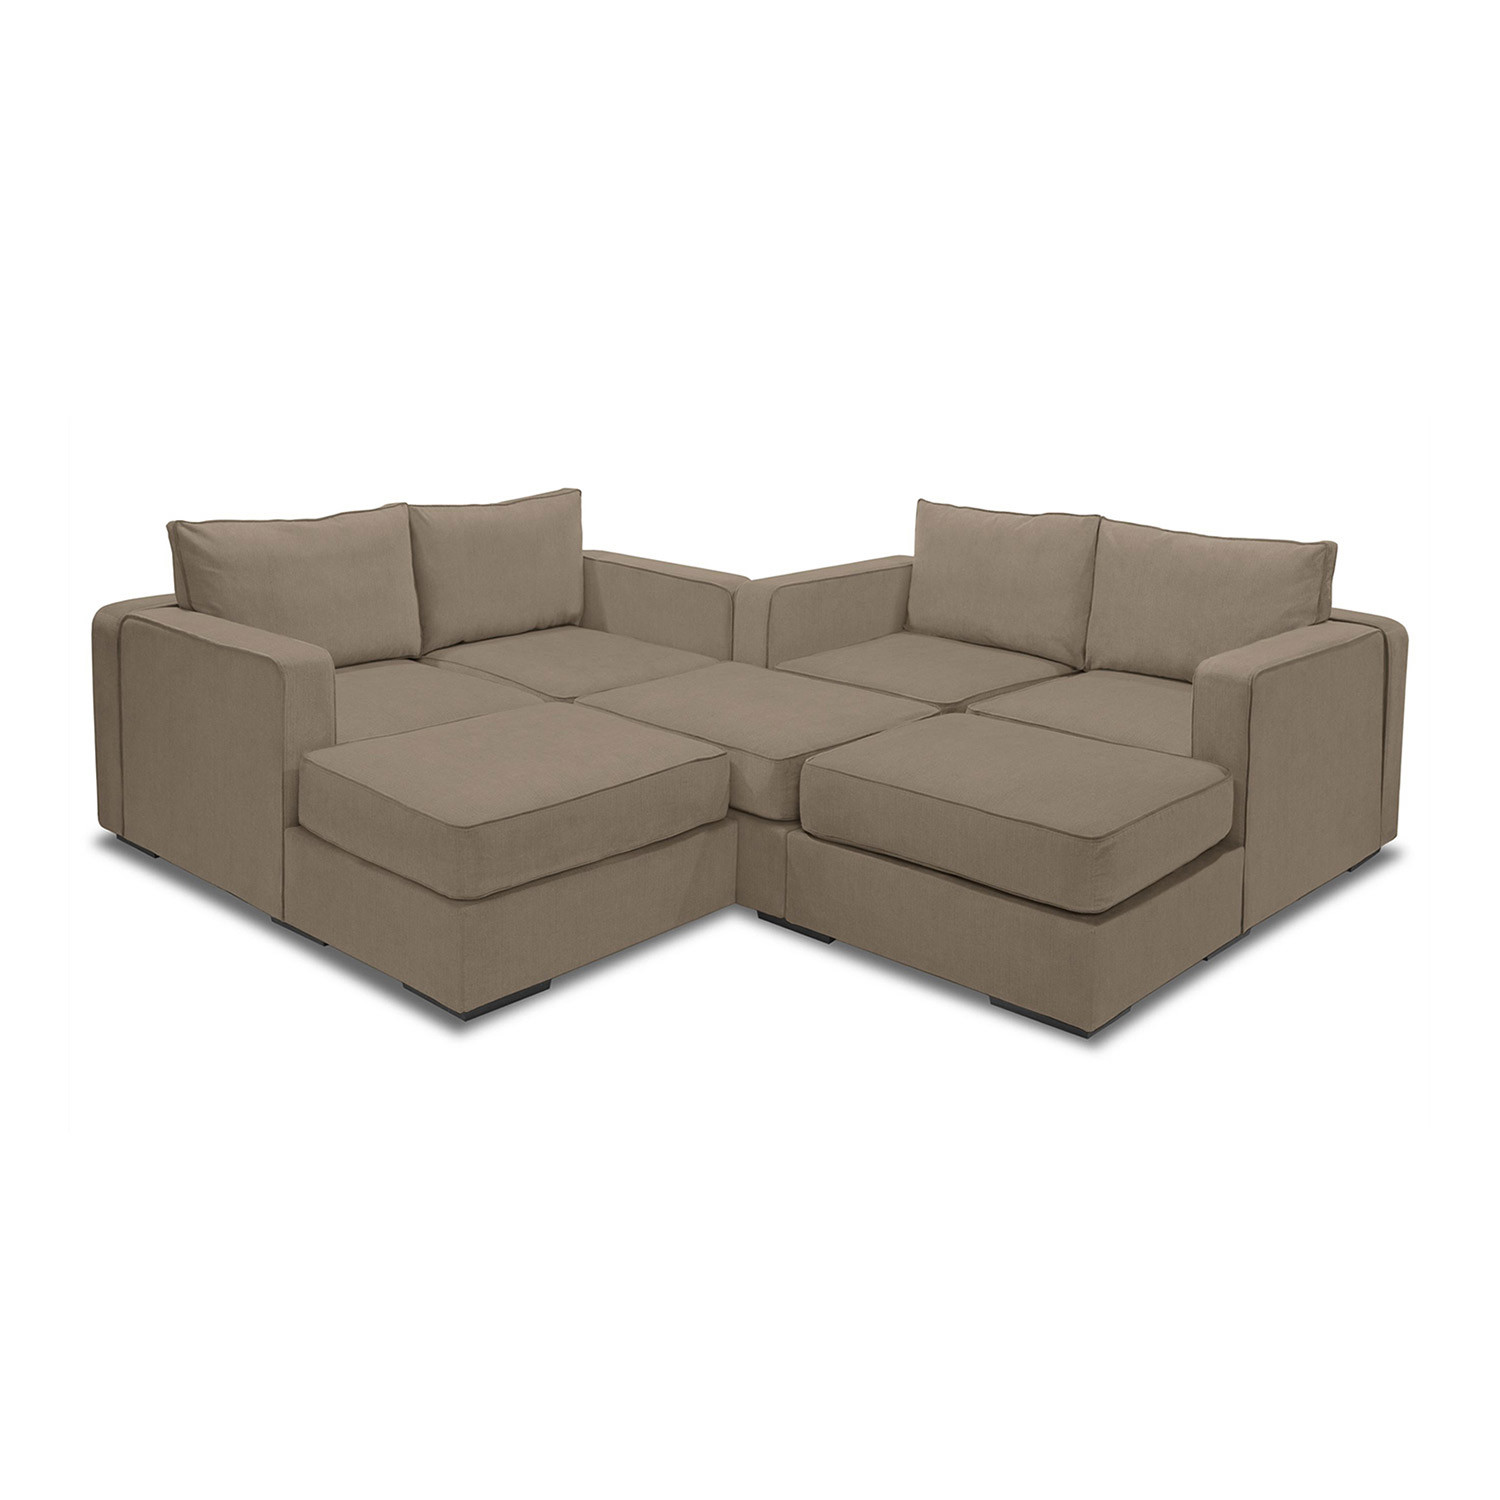 5 series sactionals m lounger taupe